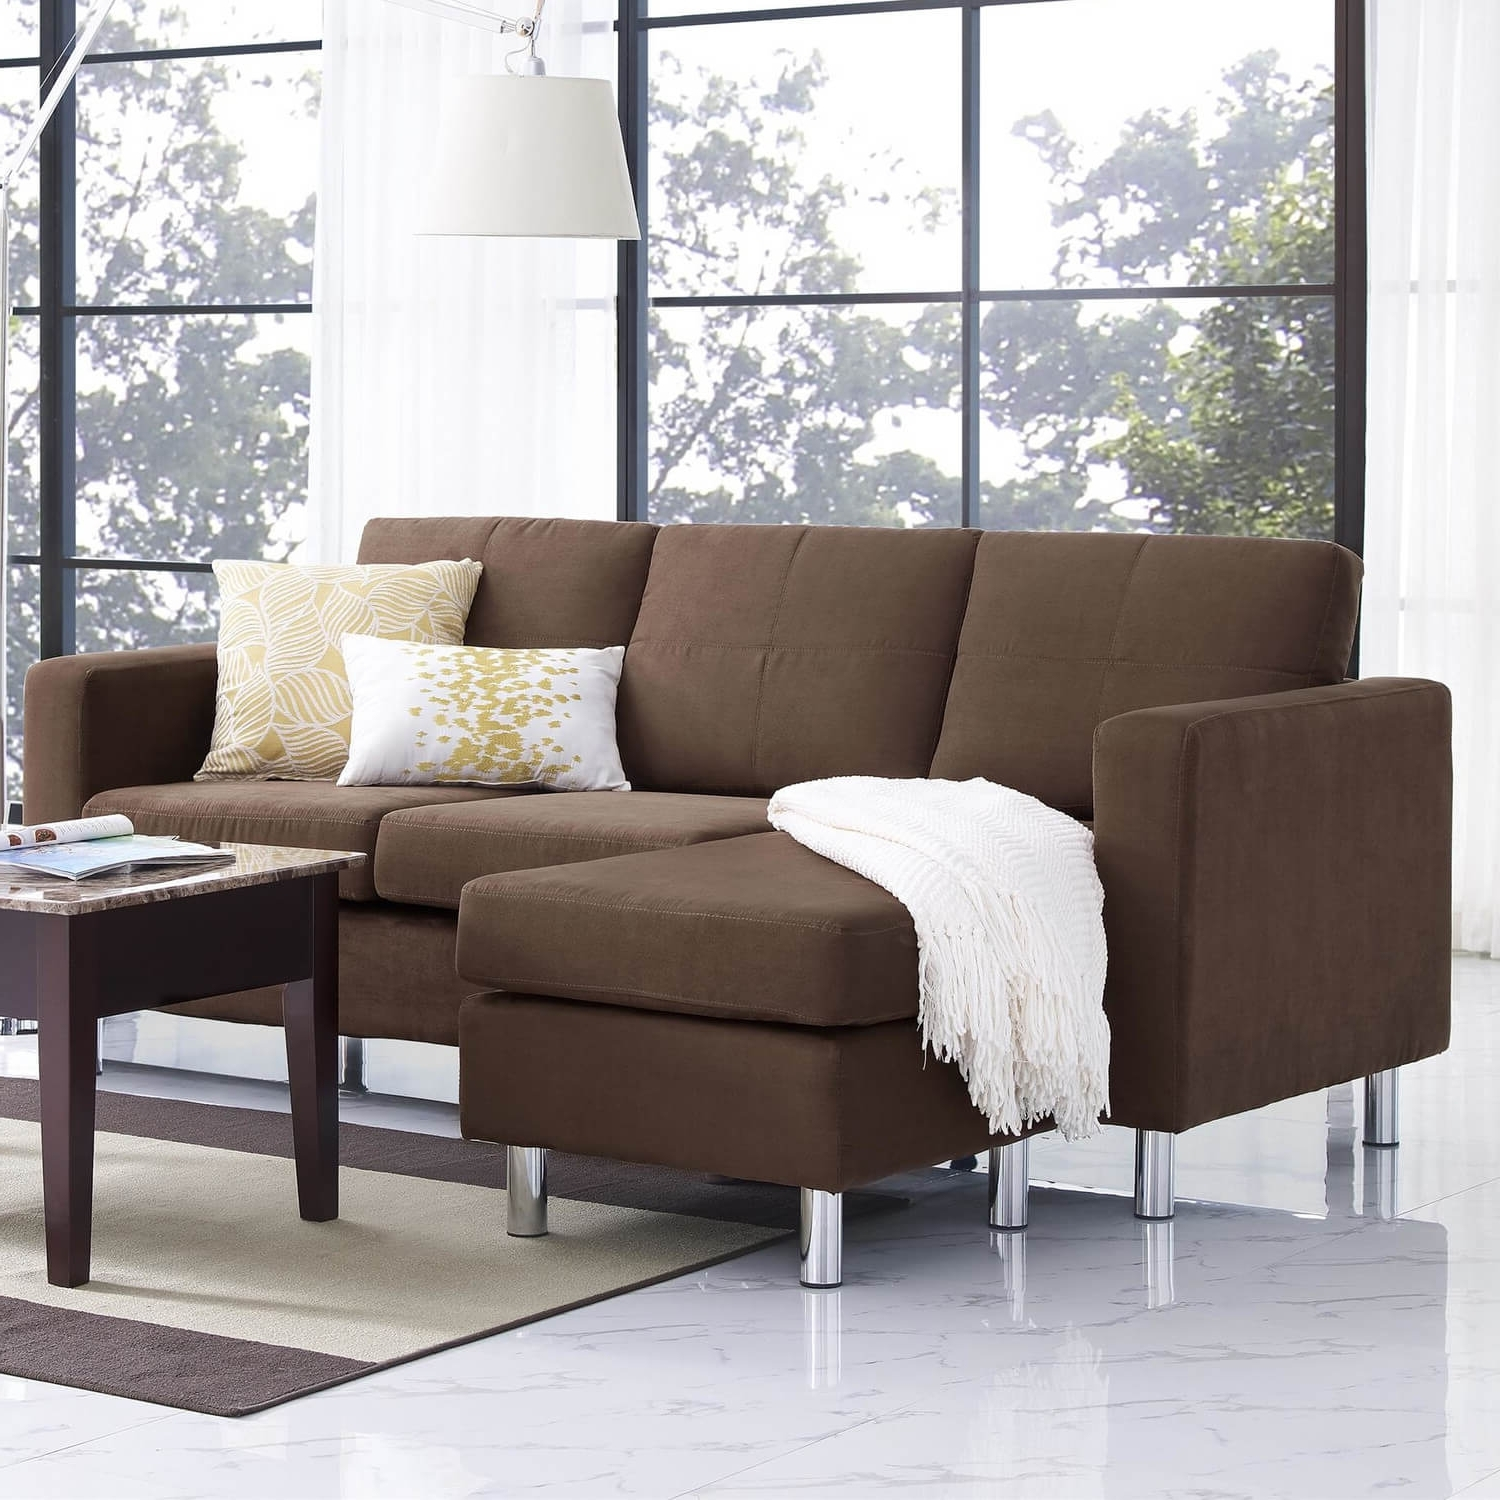 40 Cheap Sectional Sofas Under $500 For 2018 Regarding Trendy Sectional Sofas Under (View 16 of 20)